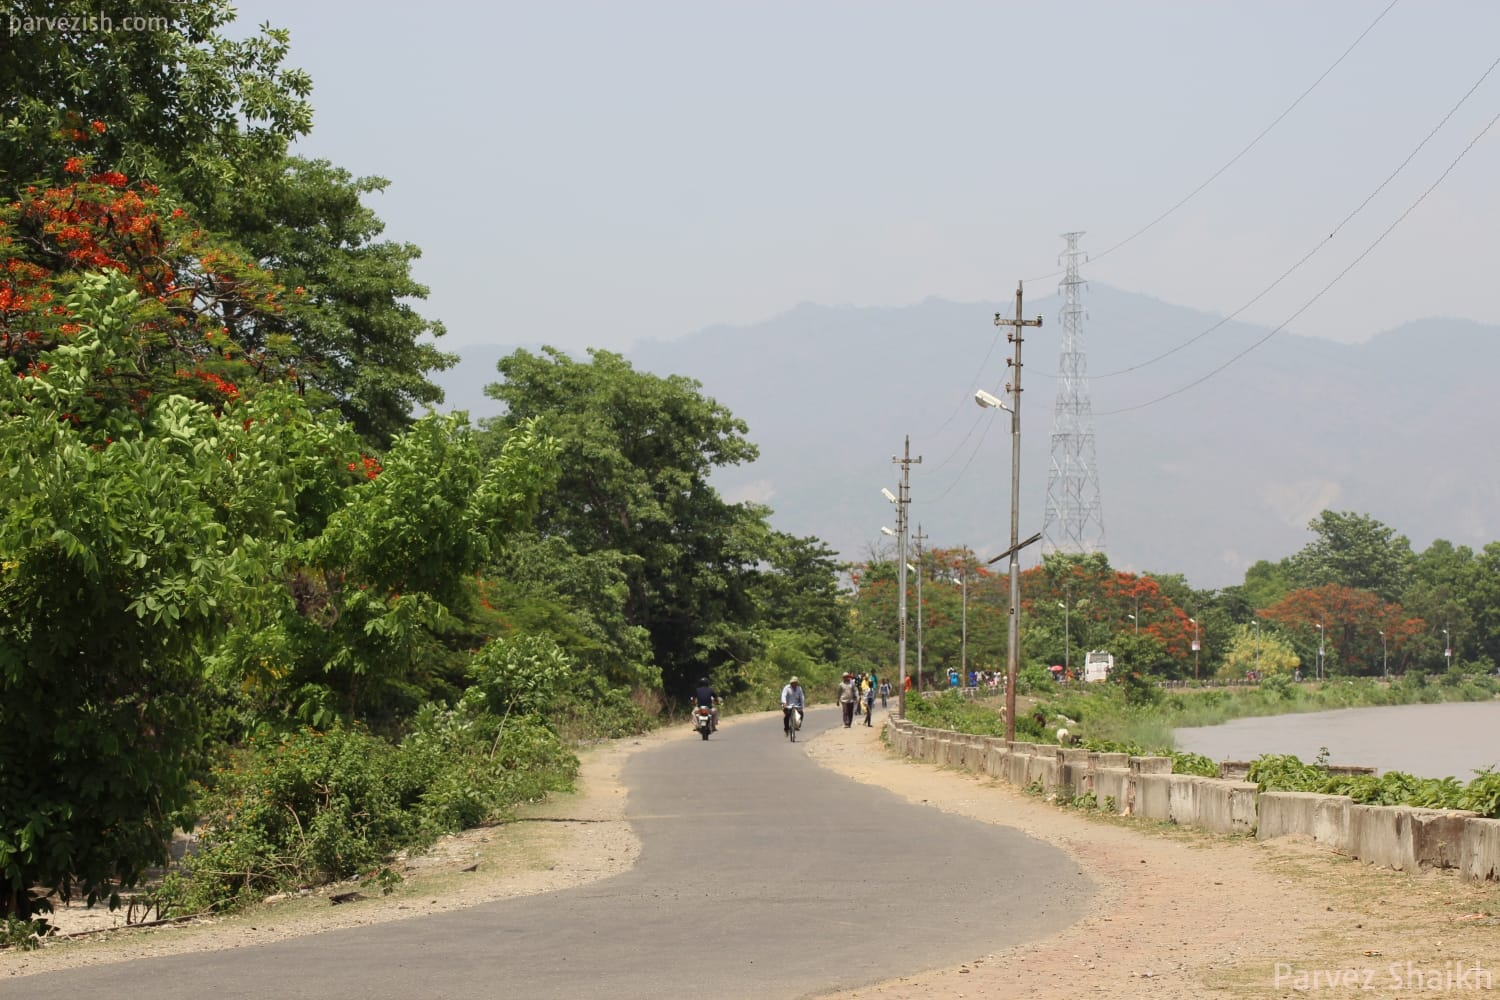 Entering Nepal on Foot from India